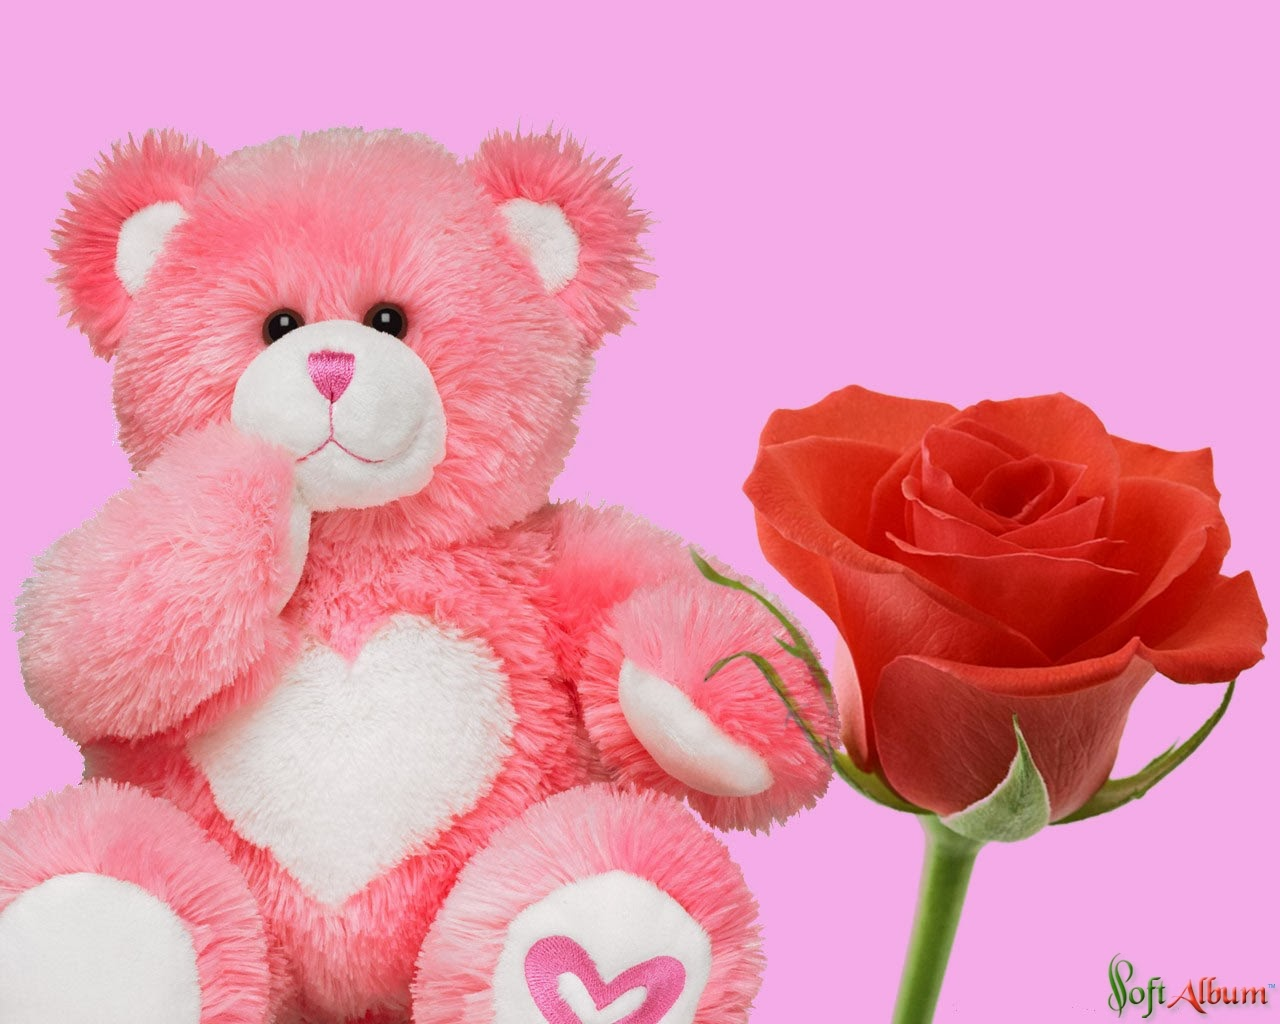 Teddy bear with pink roses - photo#2